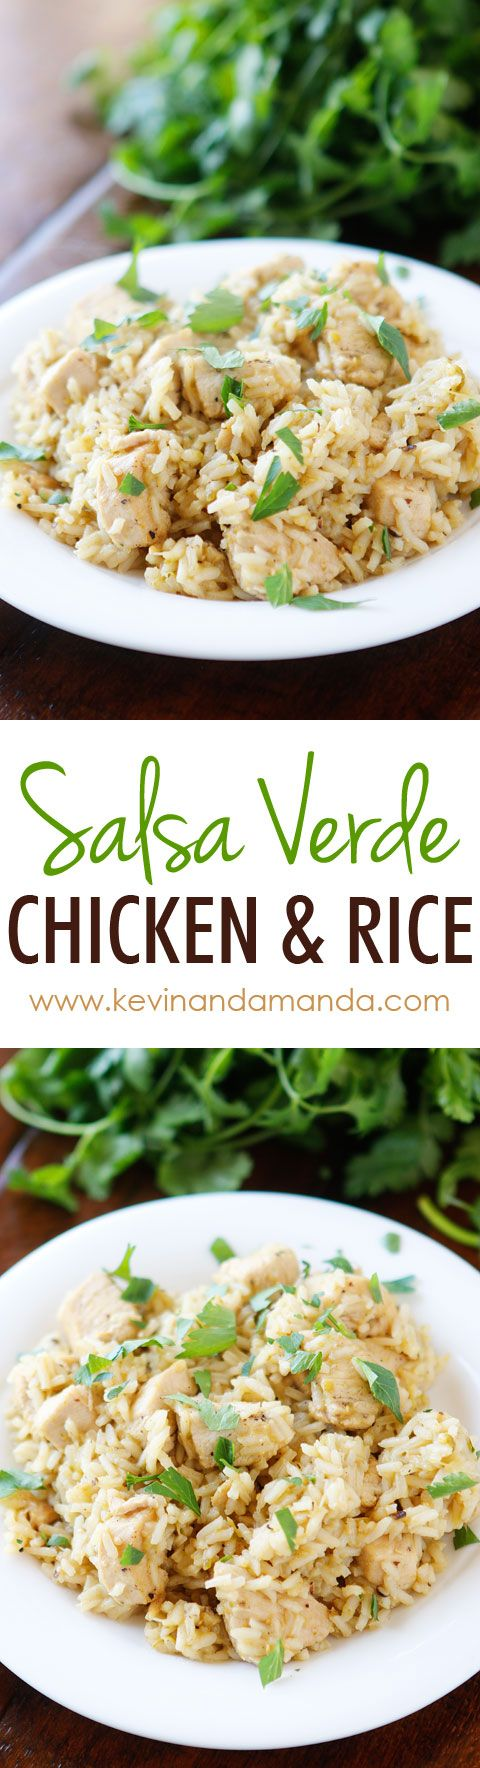 So easy  Only four ingredients  Chicken  rice  salsa verde  and chicken broth  or water   All cooks in one pot  even the rice  Perfect for a quick and easy weeknight meal